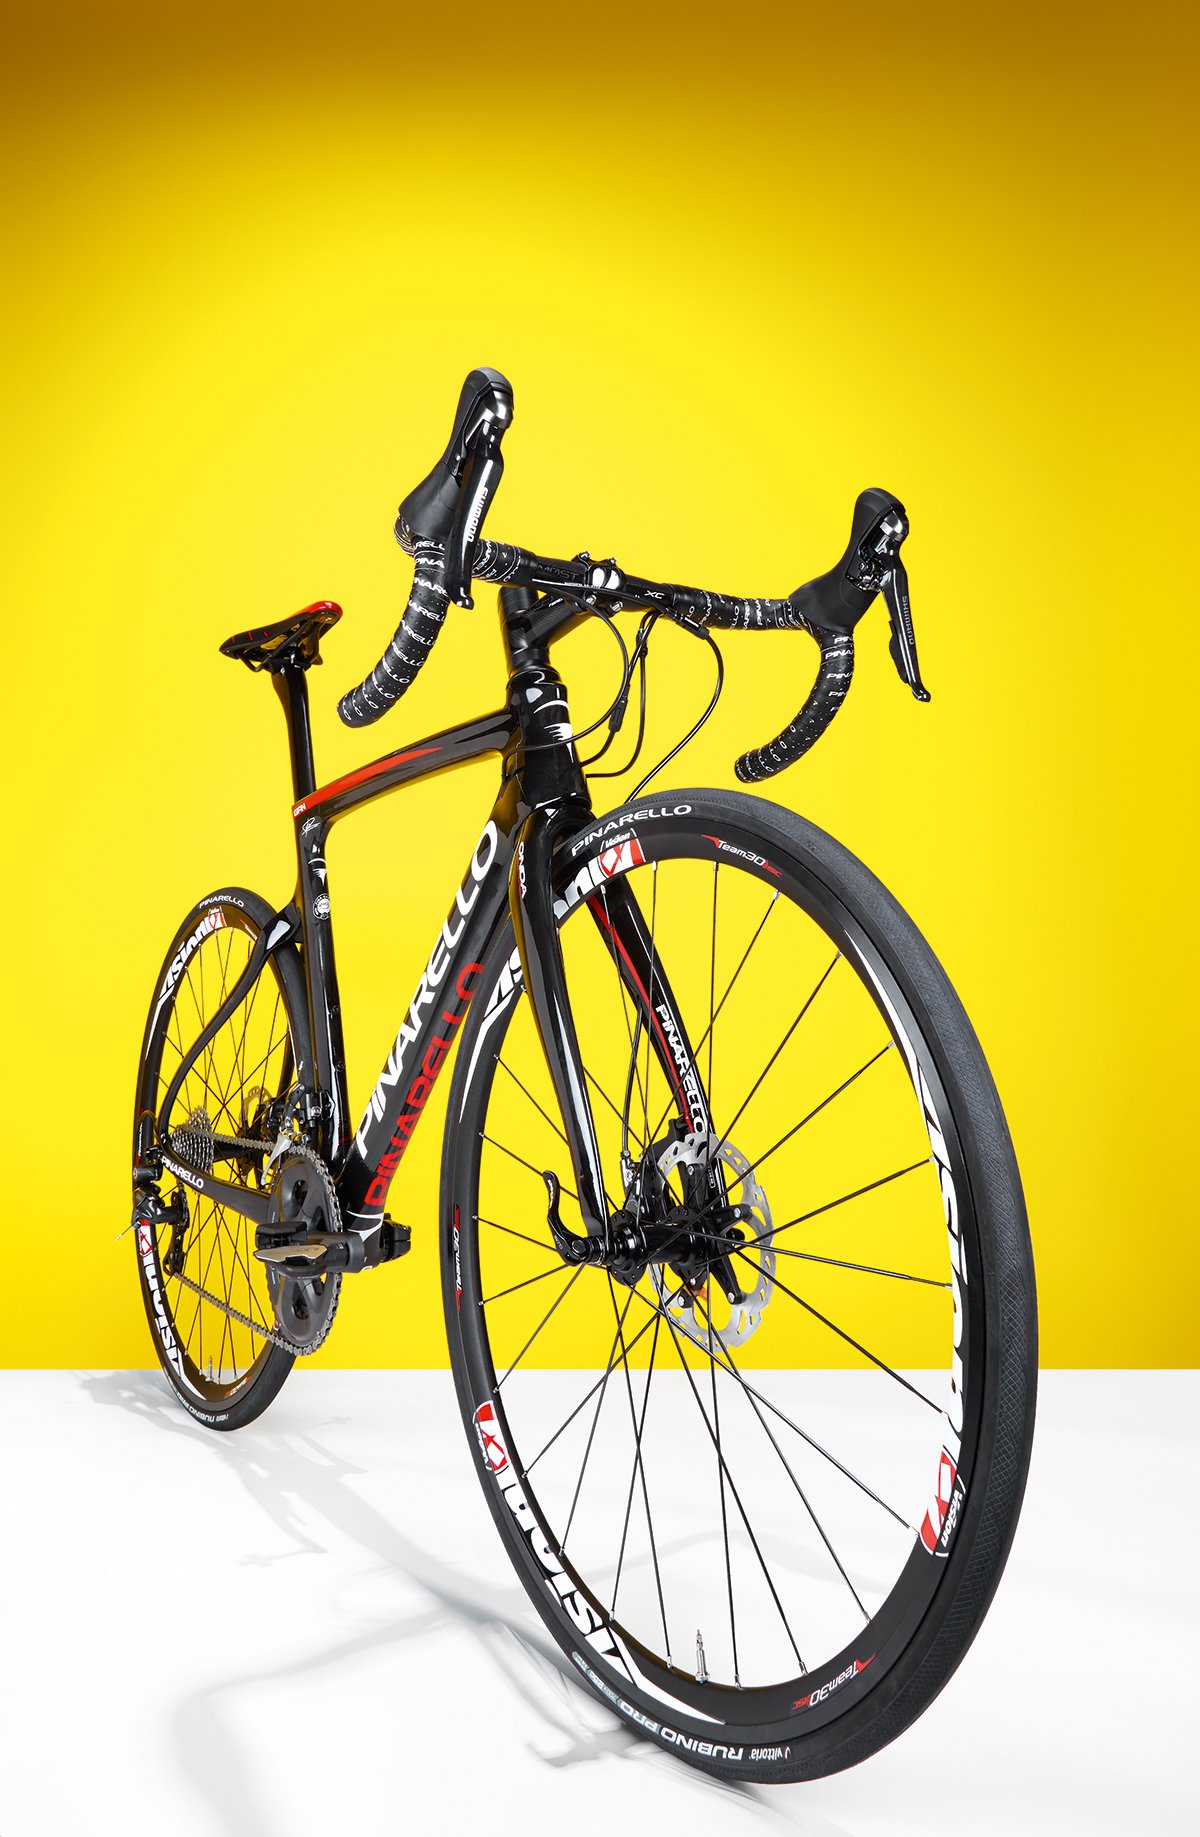 Pinarello Gan Disc the Dogma that you can really ride